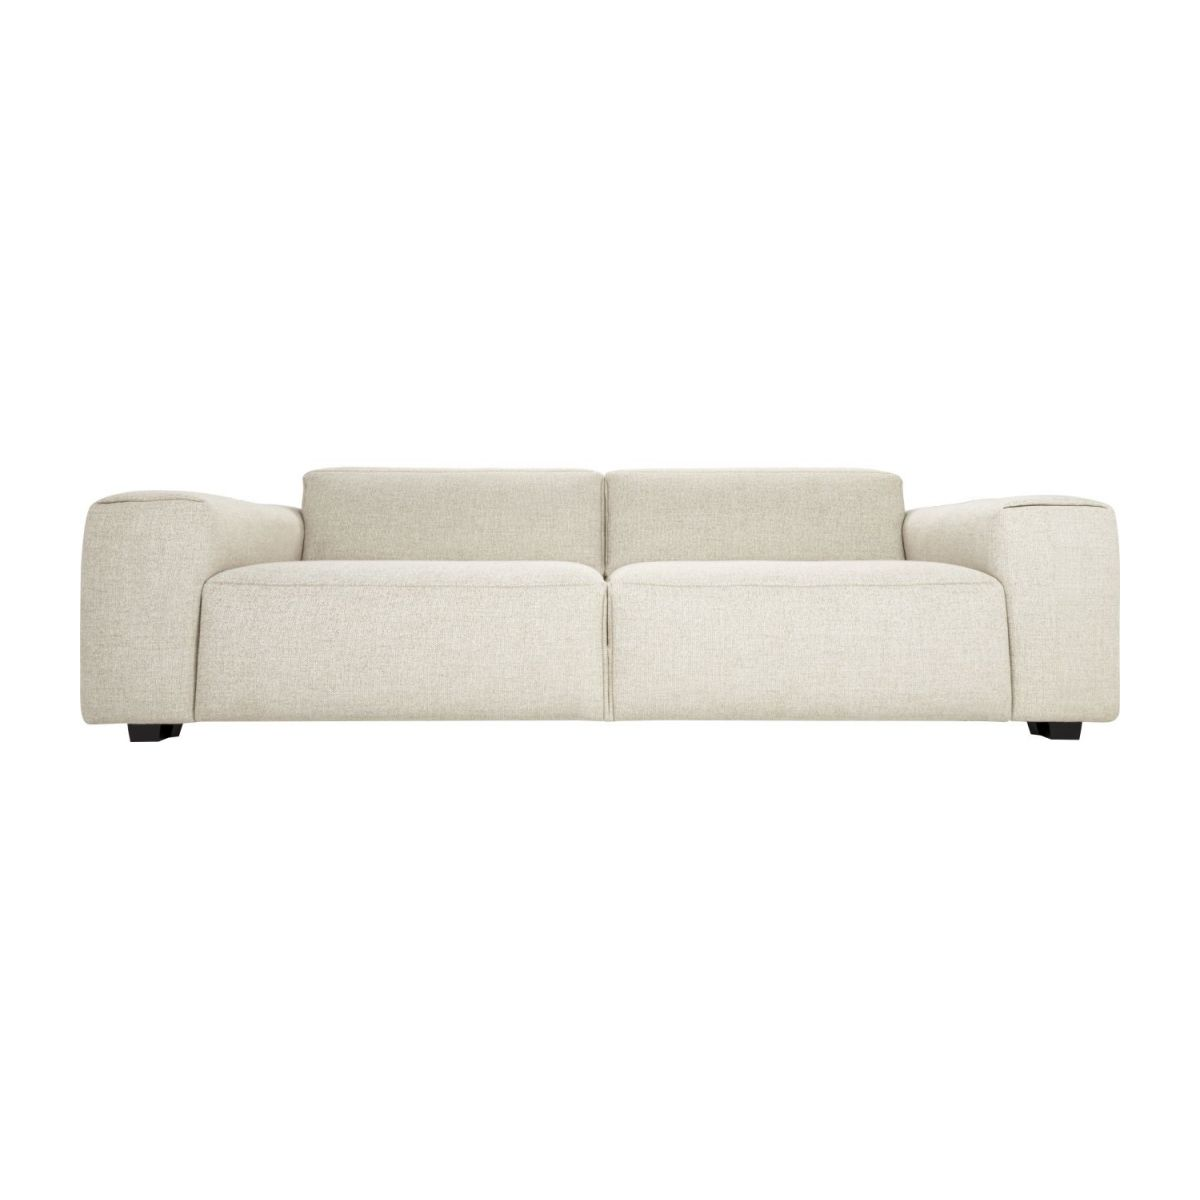 4 seater sofa in Lecce fabric, nature n°4